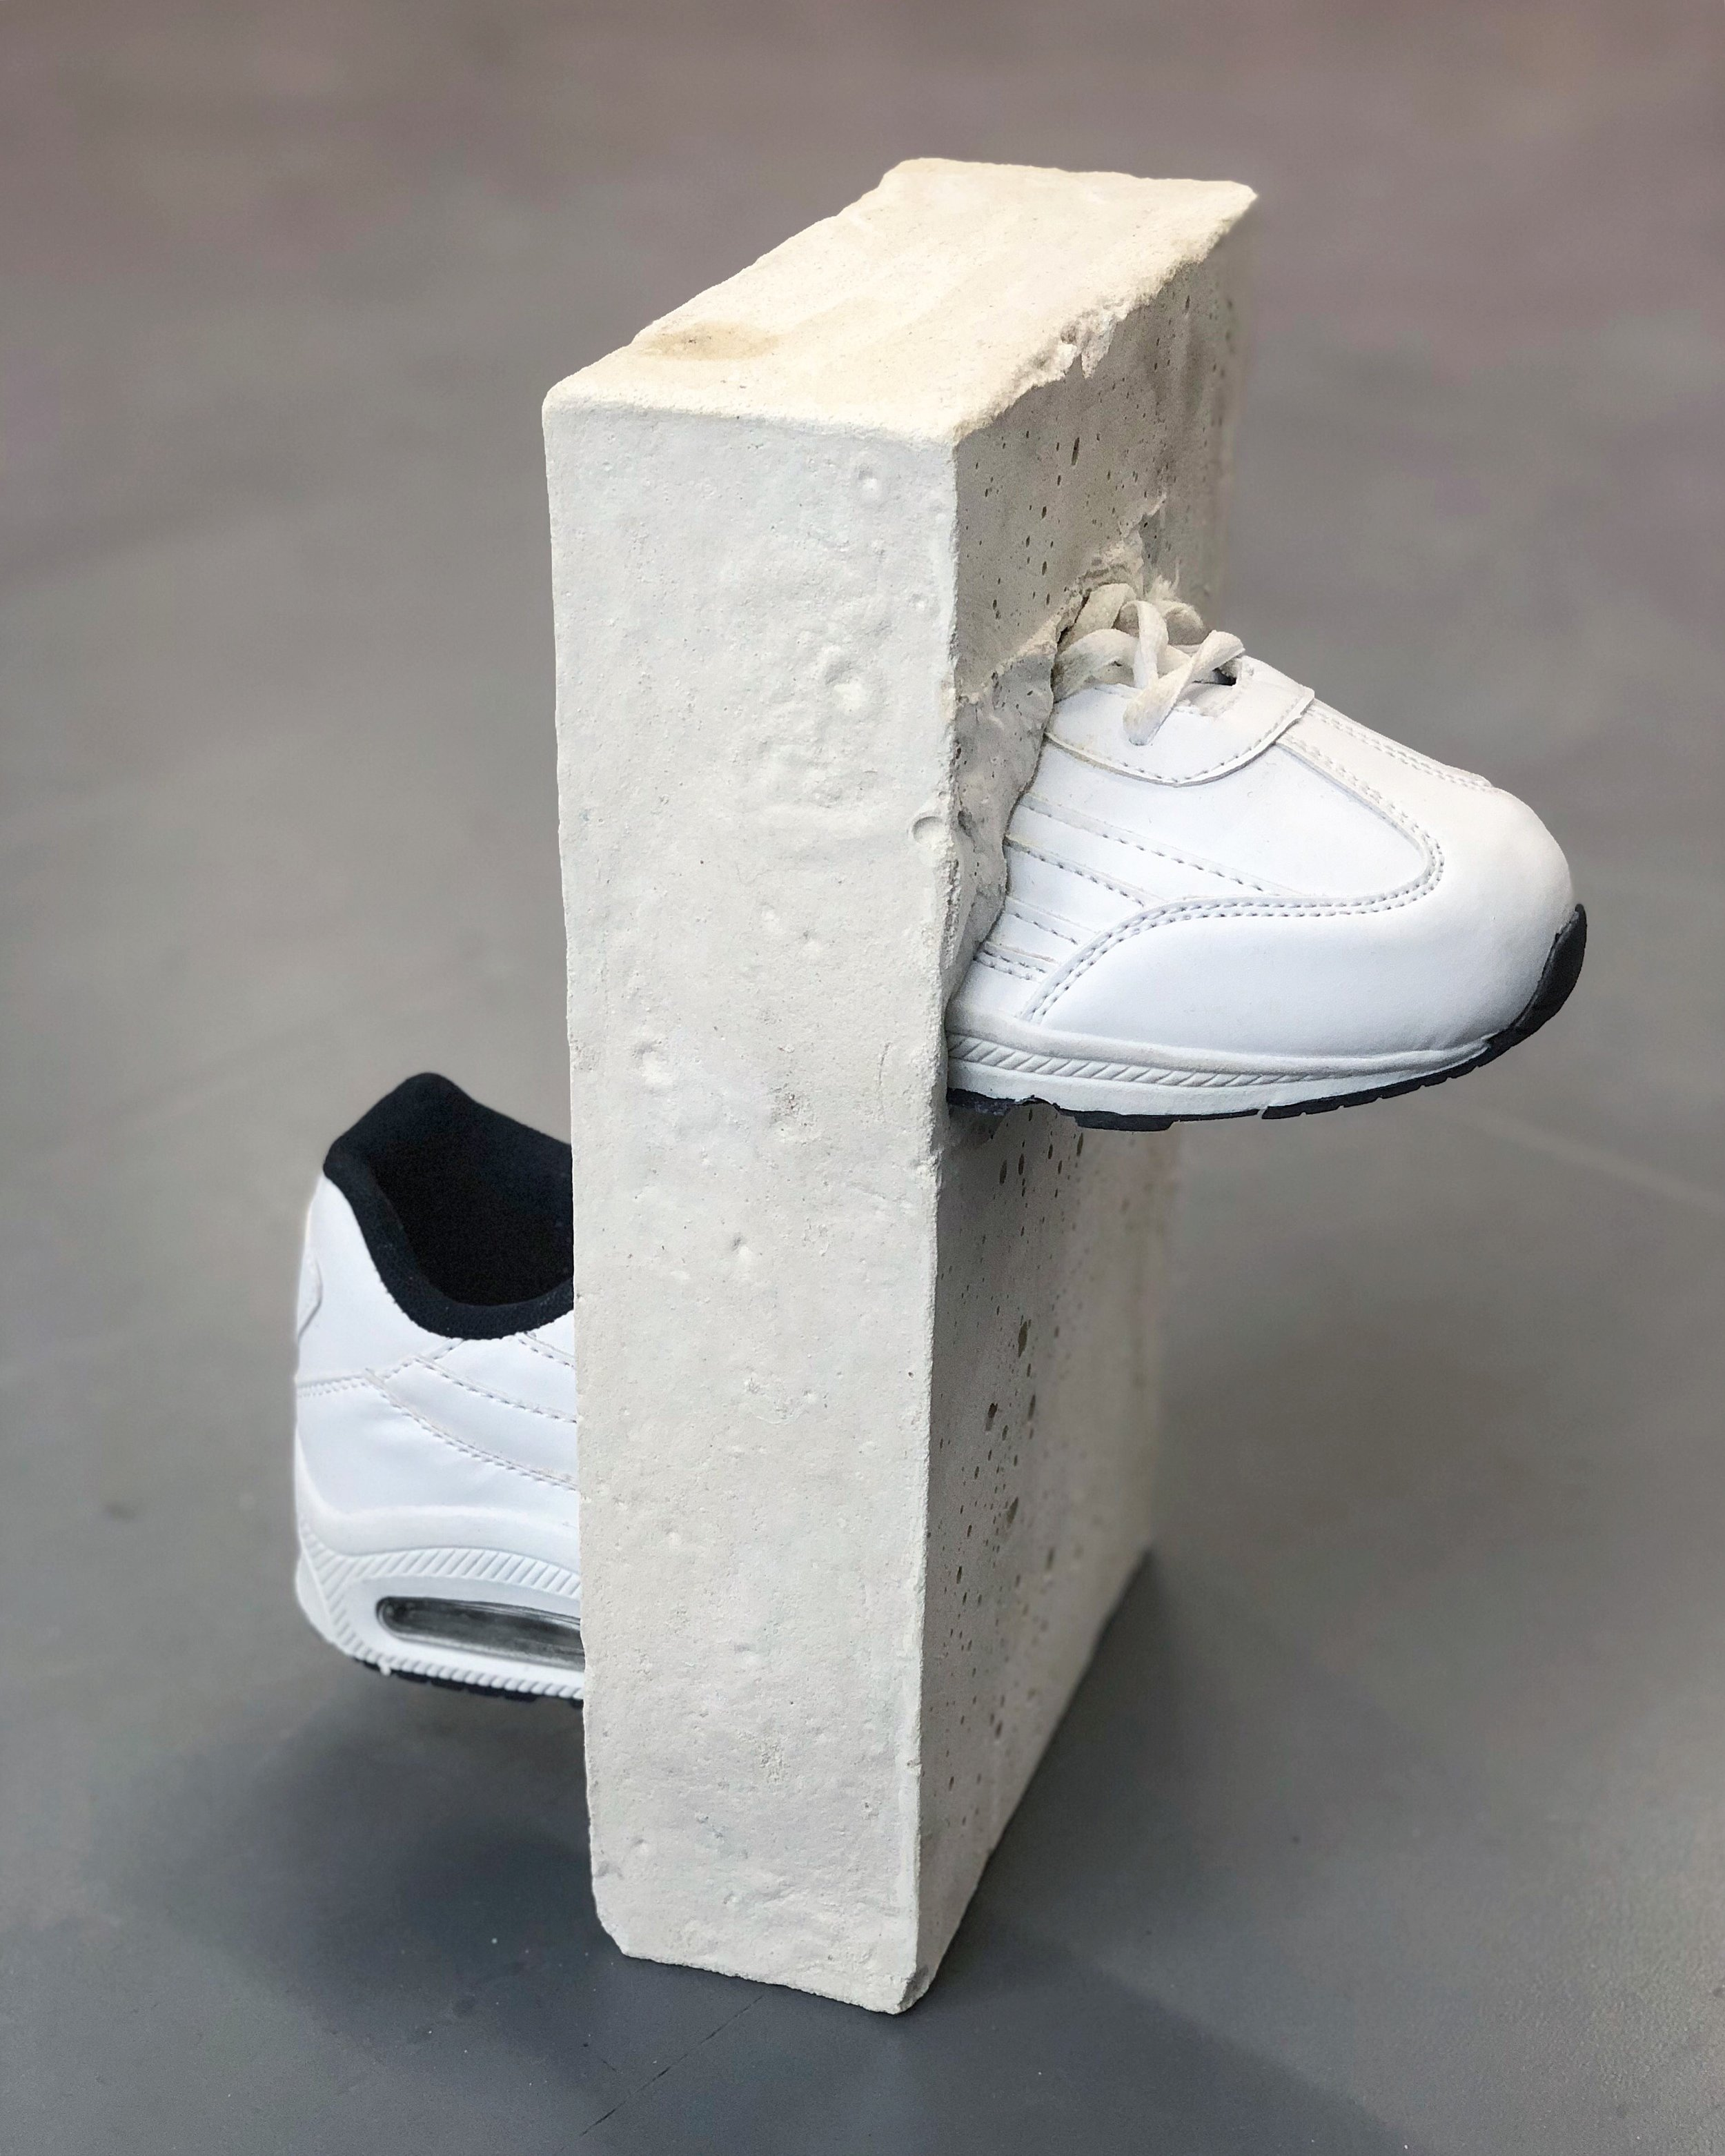 Richie Culver - Latest Works - Sneaker in Cement